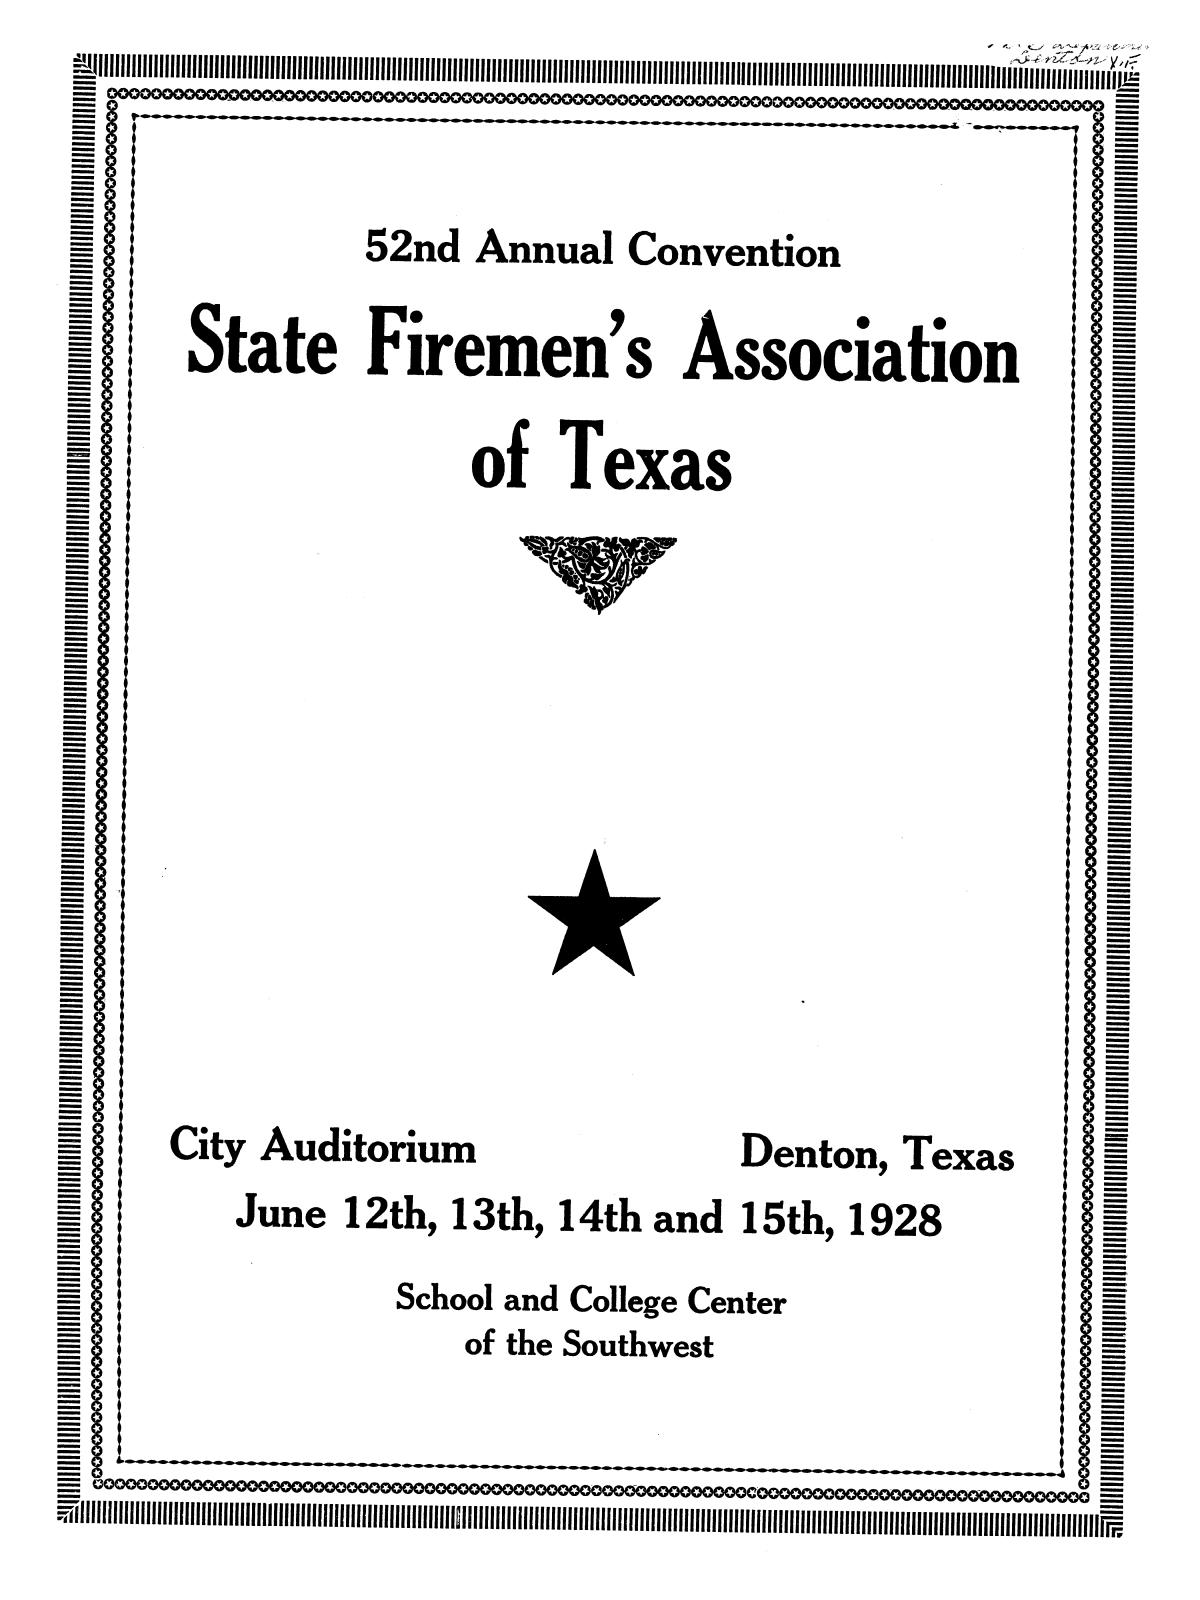 52nd Annual Convention State Firemen's Association of Texas                                                                                                      [Sequence #]: 1 of 51